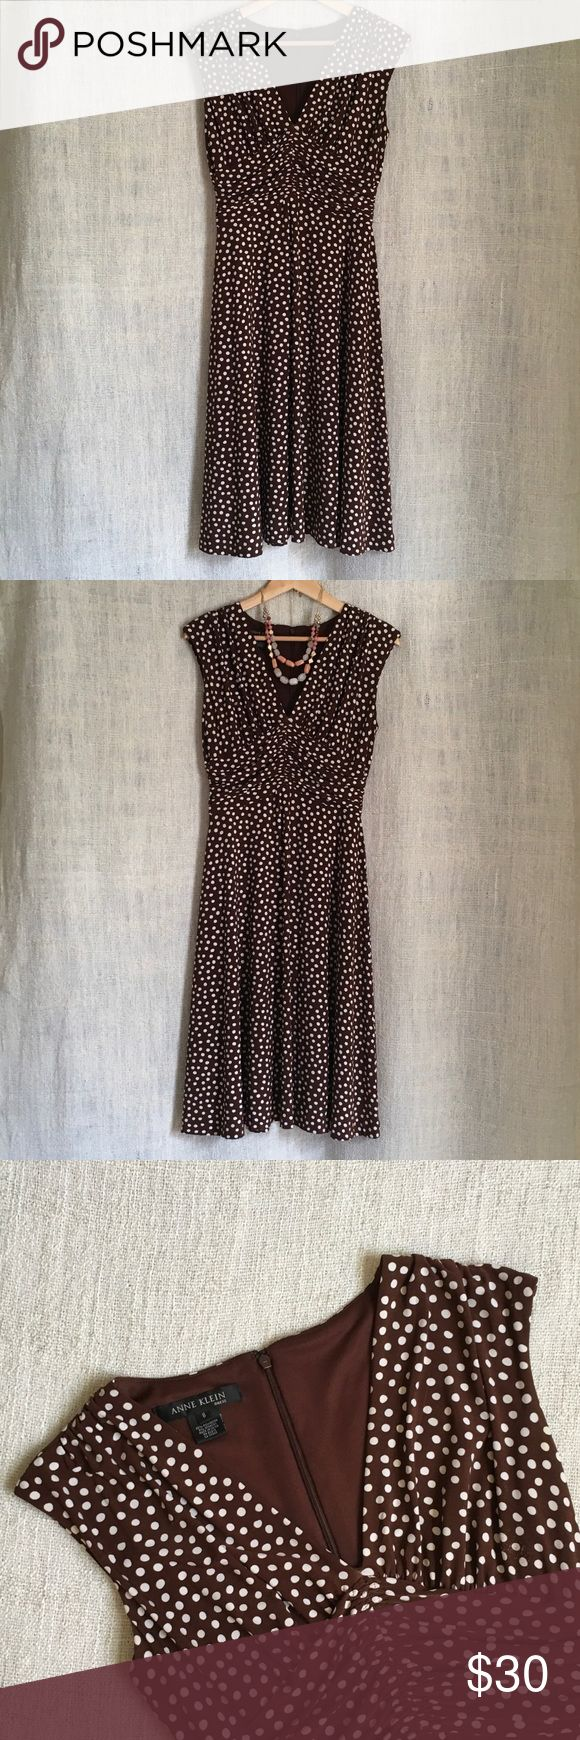 Pretty Woman Dress 👒👒👒 Channel Julia Roberts in this pretty brown & white polka dot dress.  Whether polo match or horse race, this dress is perfect for any occasion!  Shows some signs of wear from purse rubbing under arm, but overall very good condition.  Skirt hits below the knee. Anne Klein Dresses Midi